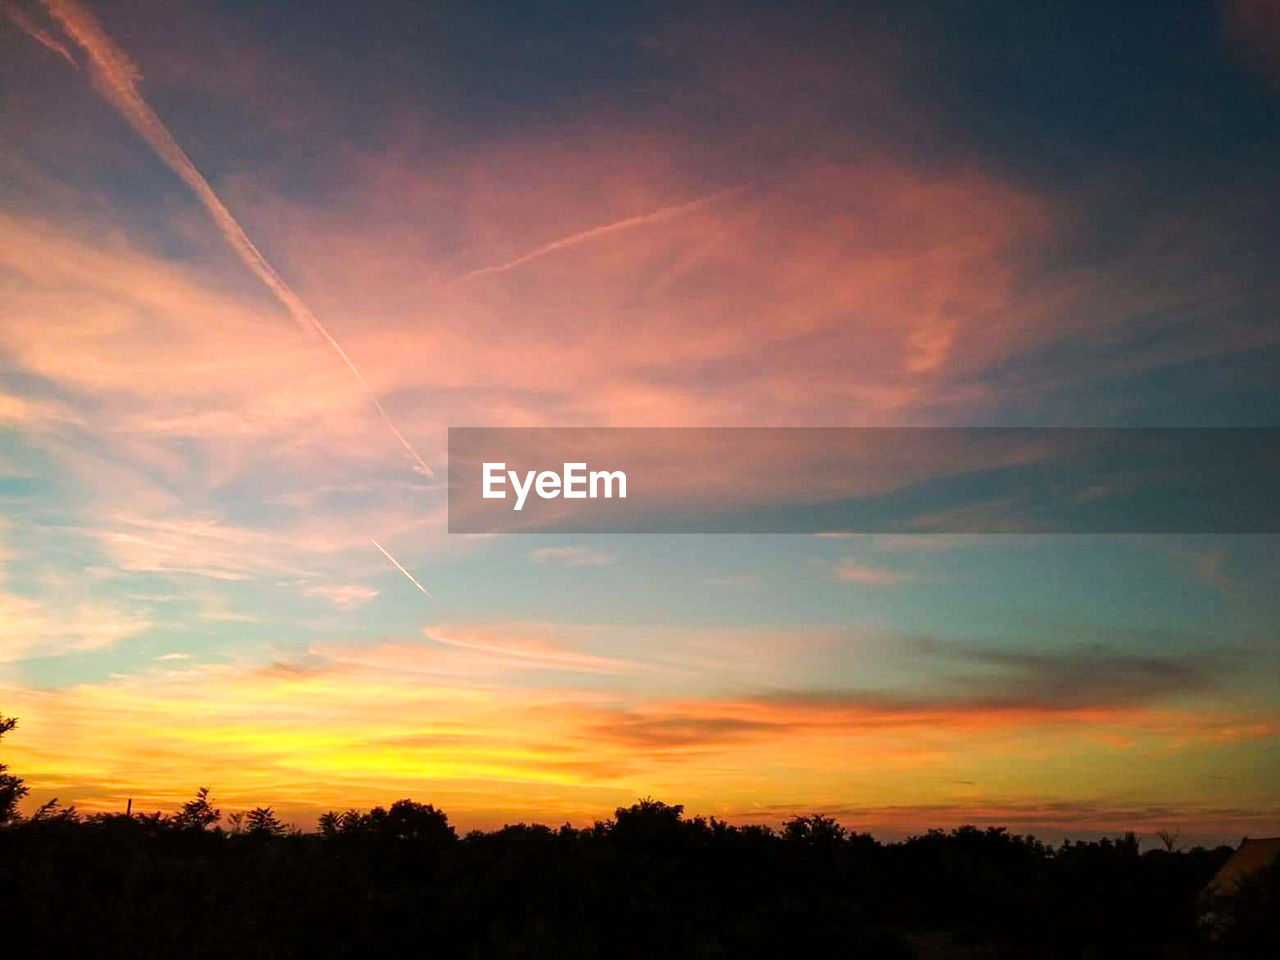 sky, cloud - sky, sunset, beauty in nature, scenics - nature, tranquility, silhouette, tranquil scene, tree, plant, nature, orange color, landscape, no people, idyllic, environment, outdoors, vapor trail, low angle view, non-urban scene, romantic sky